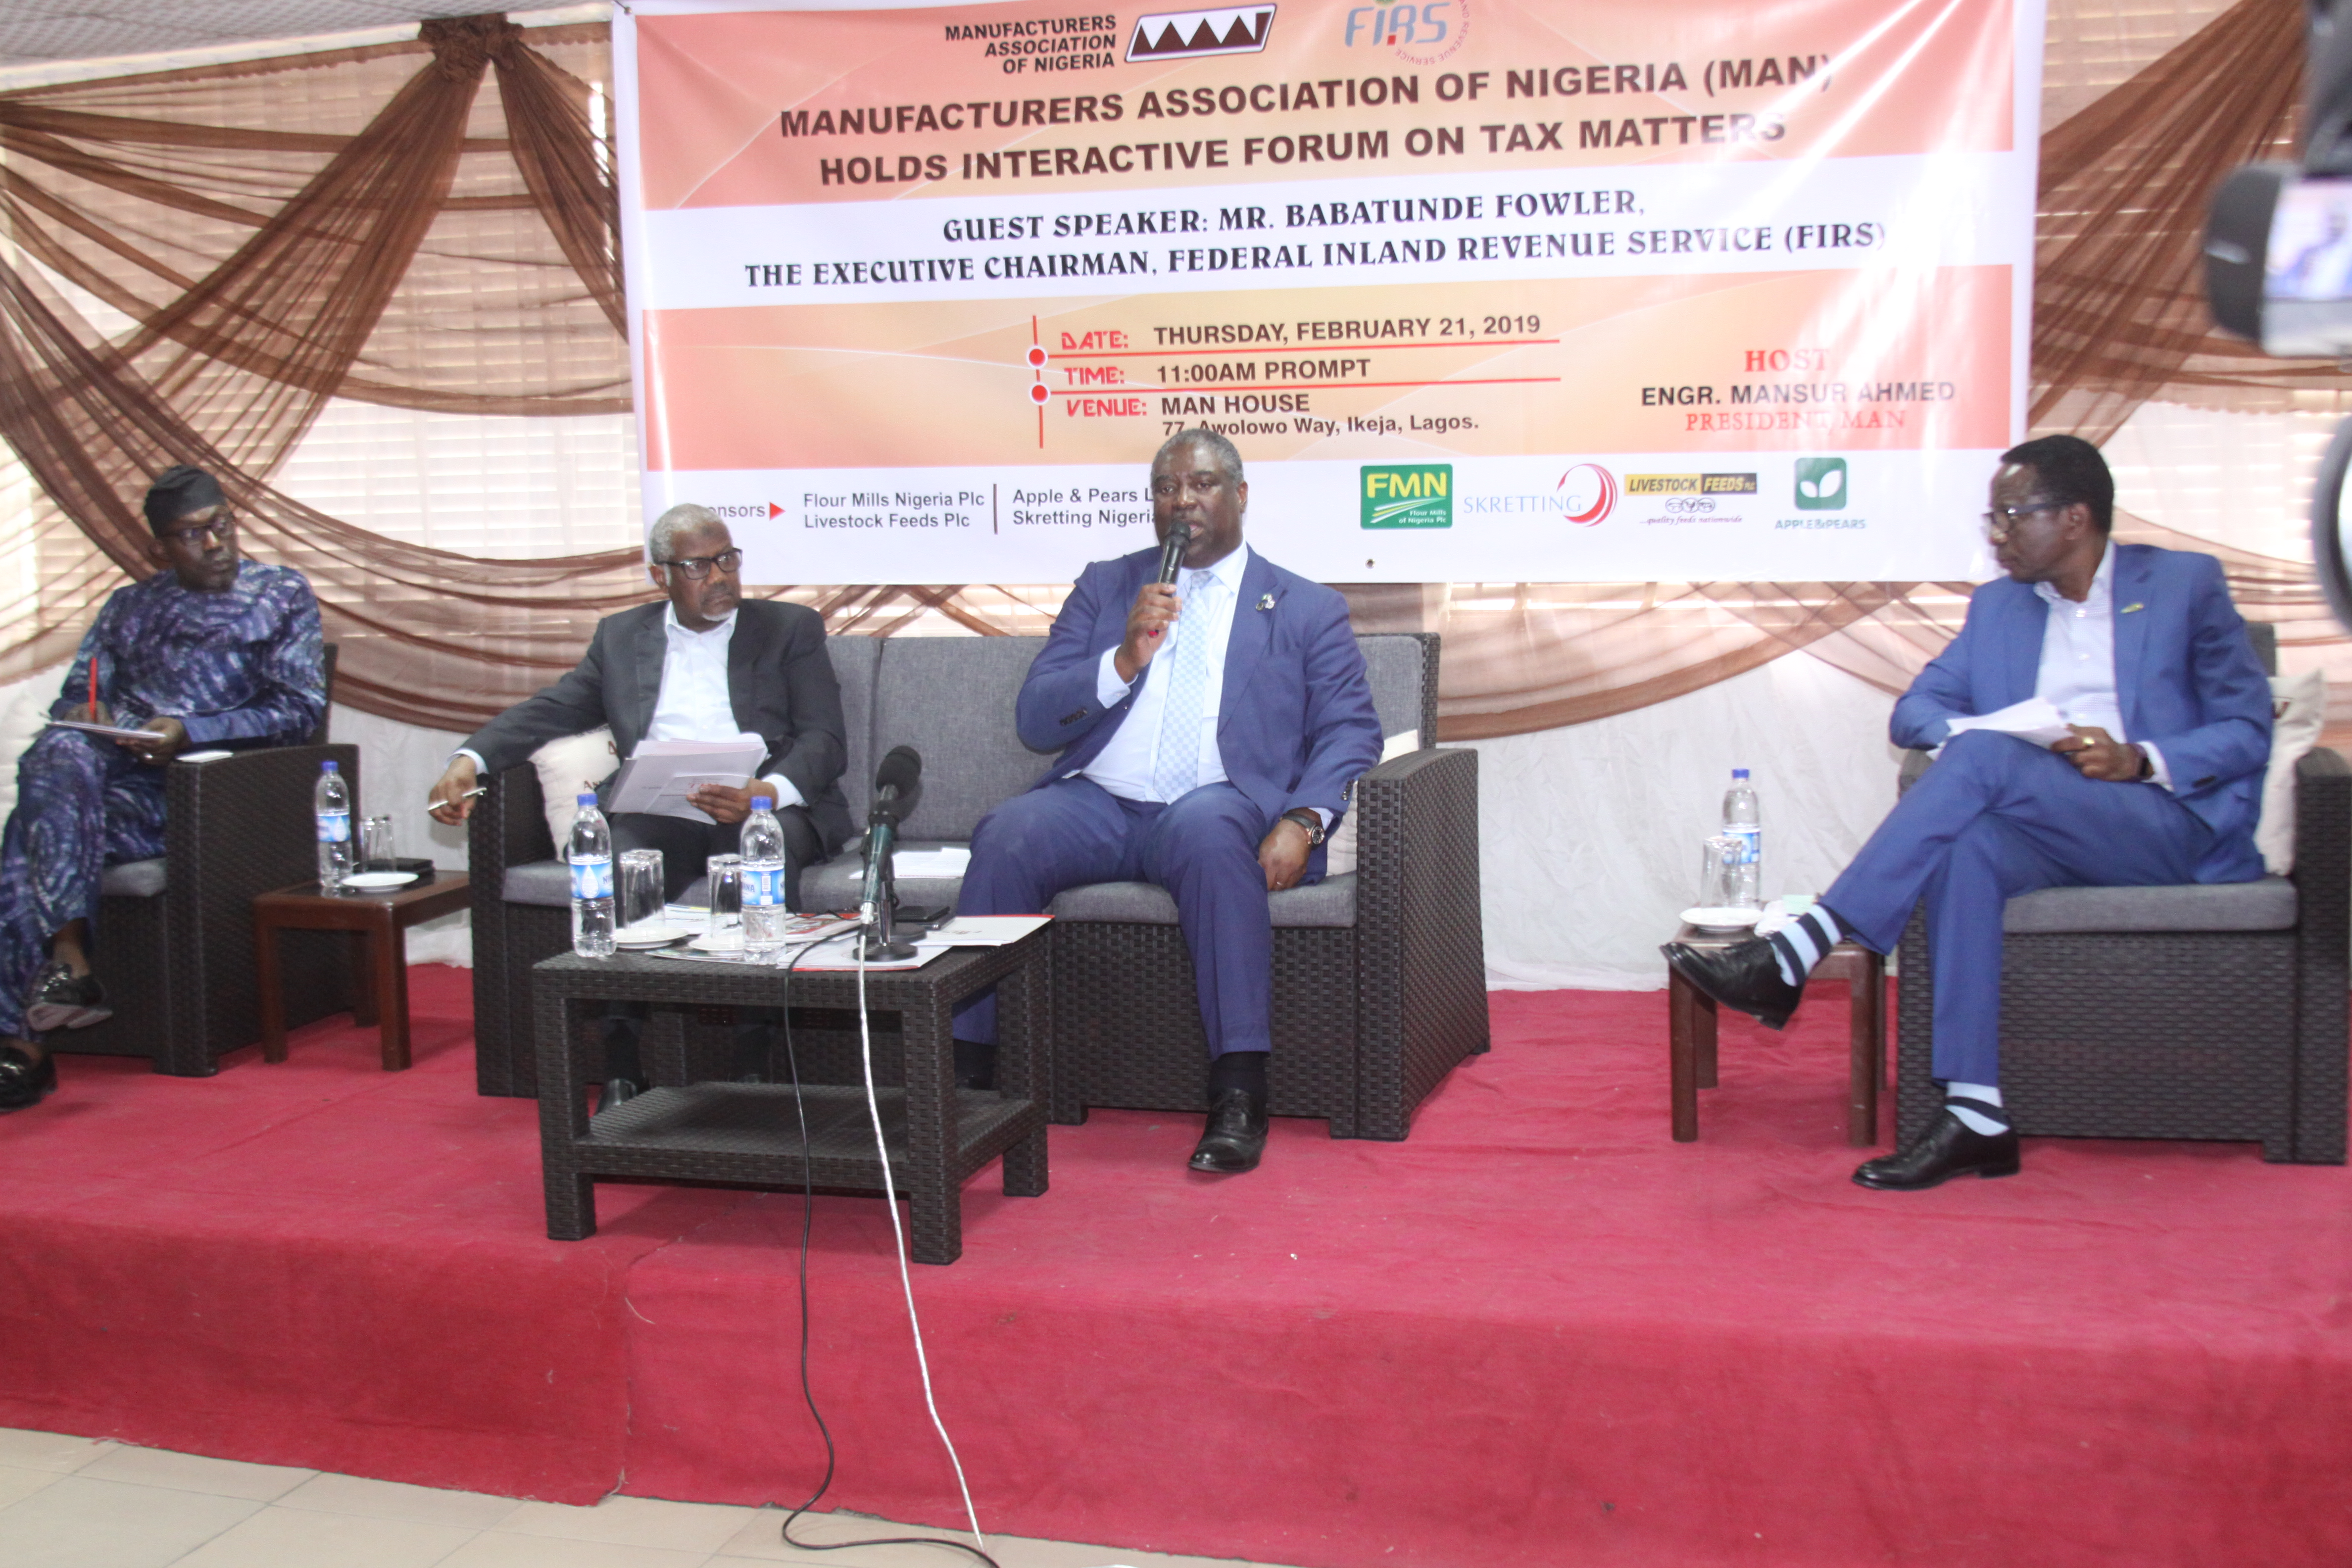 L-R: Mr Segun Ajayi-Kadir, DG MAN, Engr. Mansur Ahmed, MAN President, Mr Babatunde Fowler, Chairman